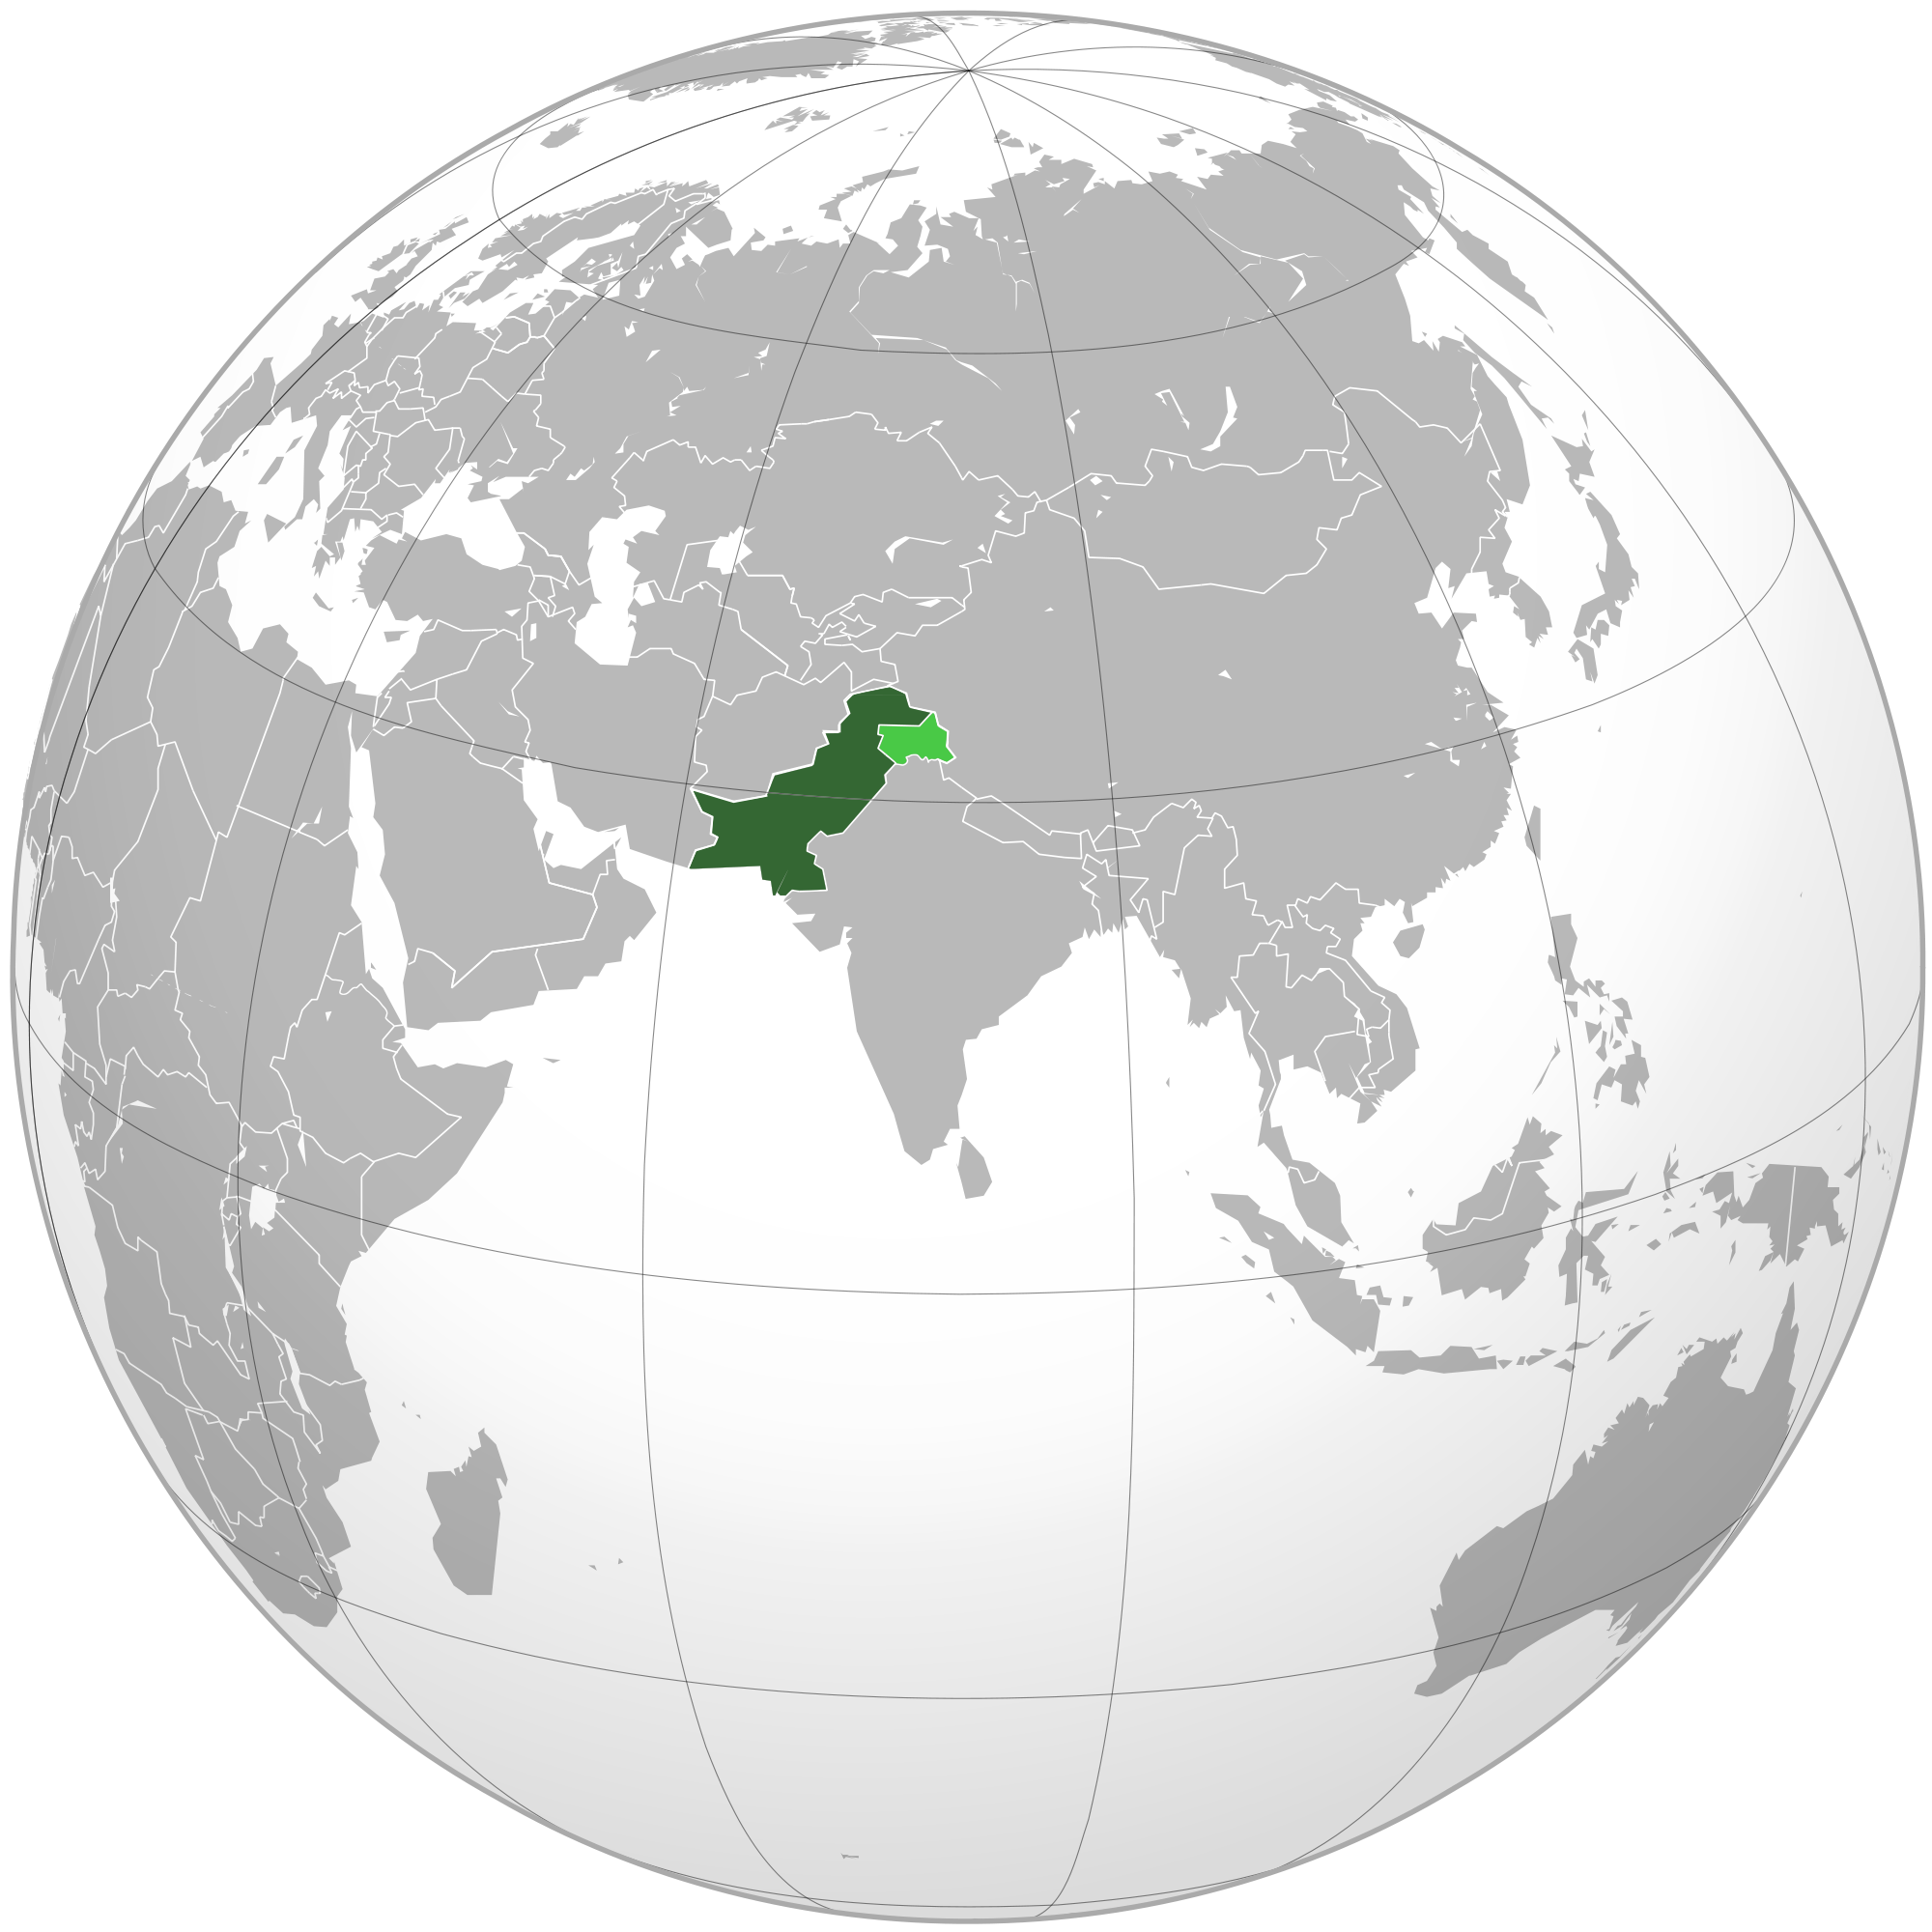 Location Of The Pakistan In The World Map